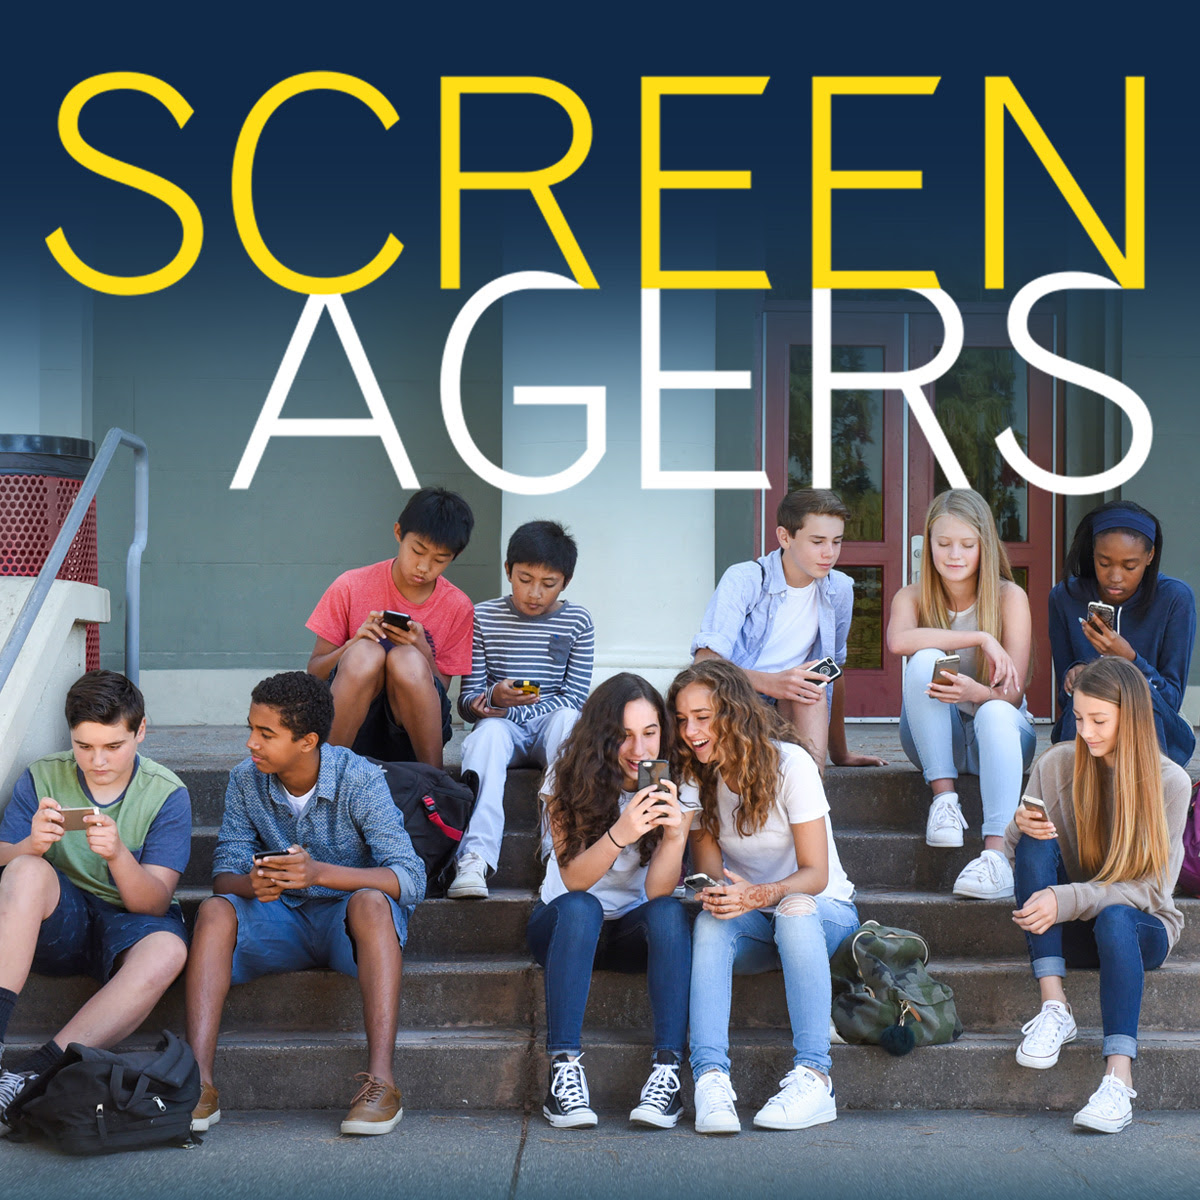 Screenagers Film Presented By Roseburg Cinemas and Adapt's Prevention & Education Program